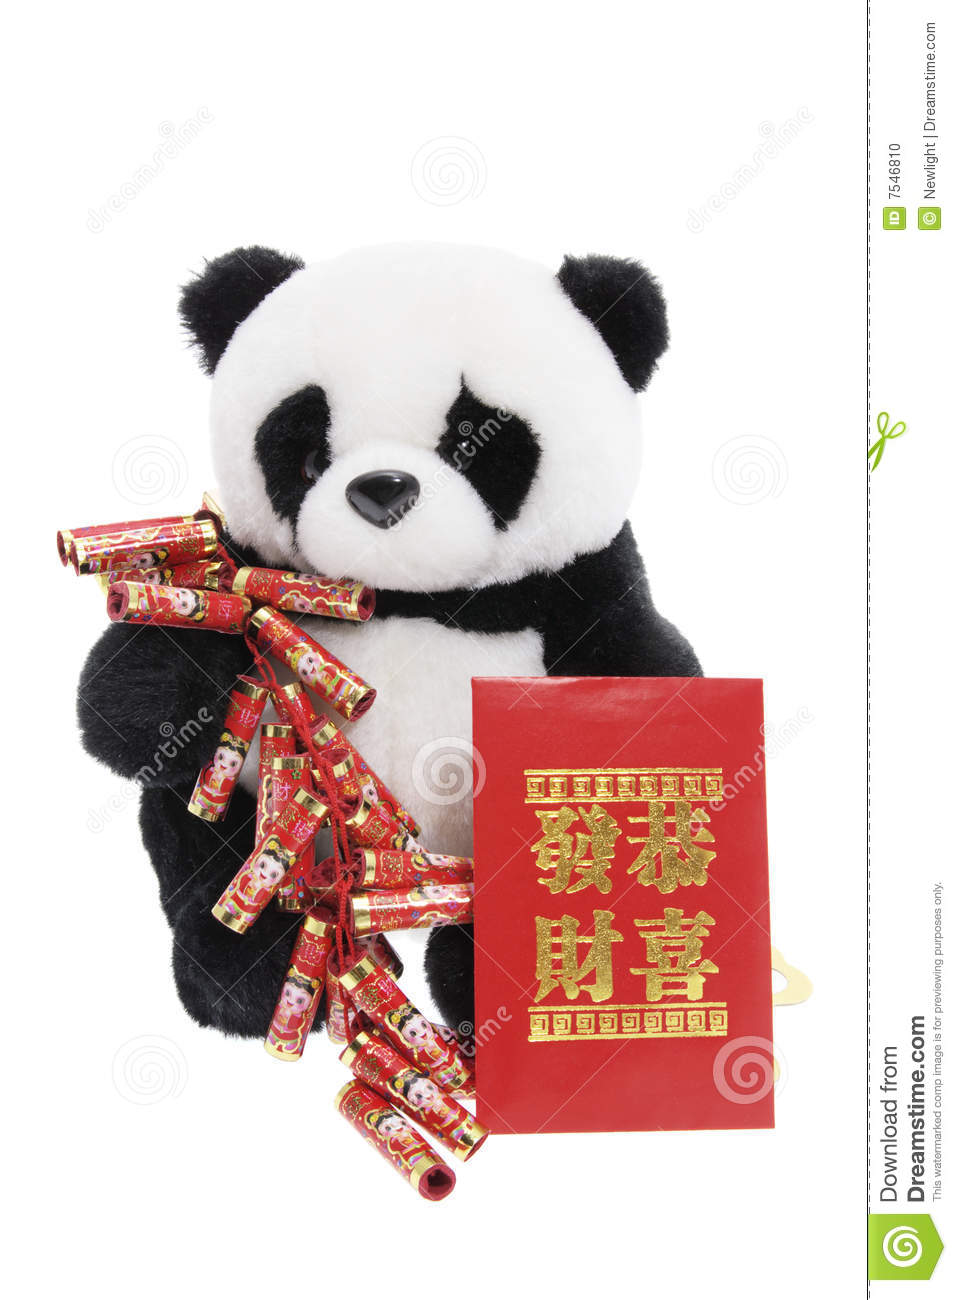 Toys For Chinese New Year : Toy panda with chinese new year decorations stock photo